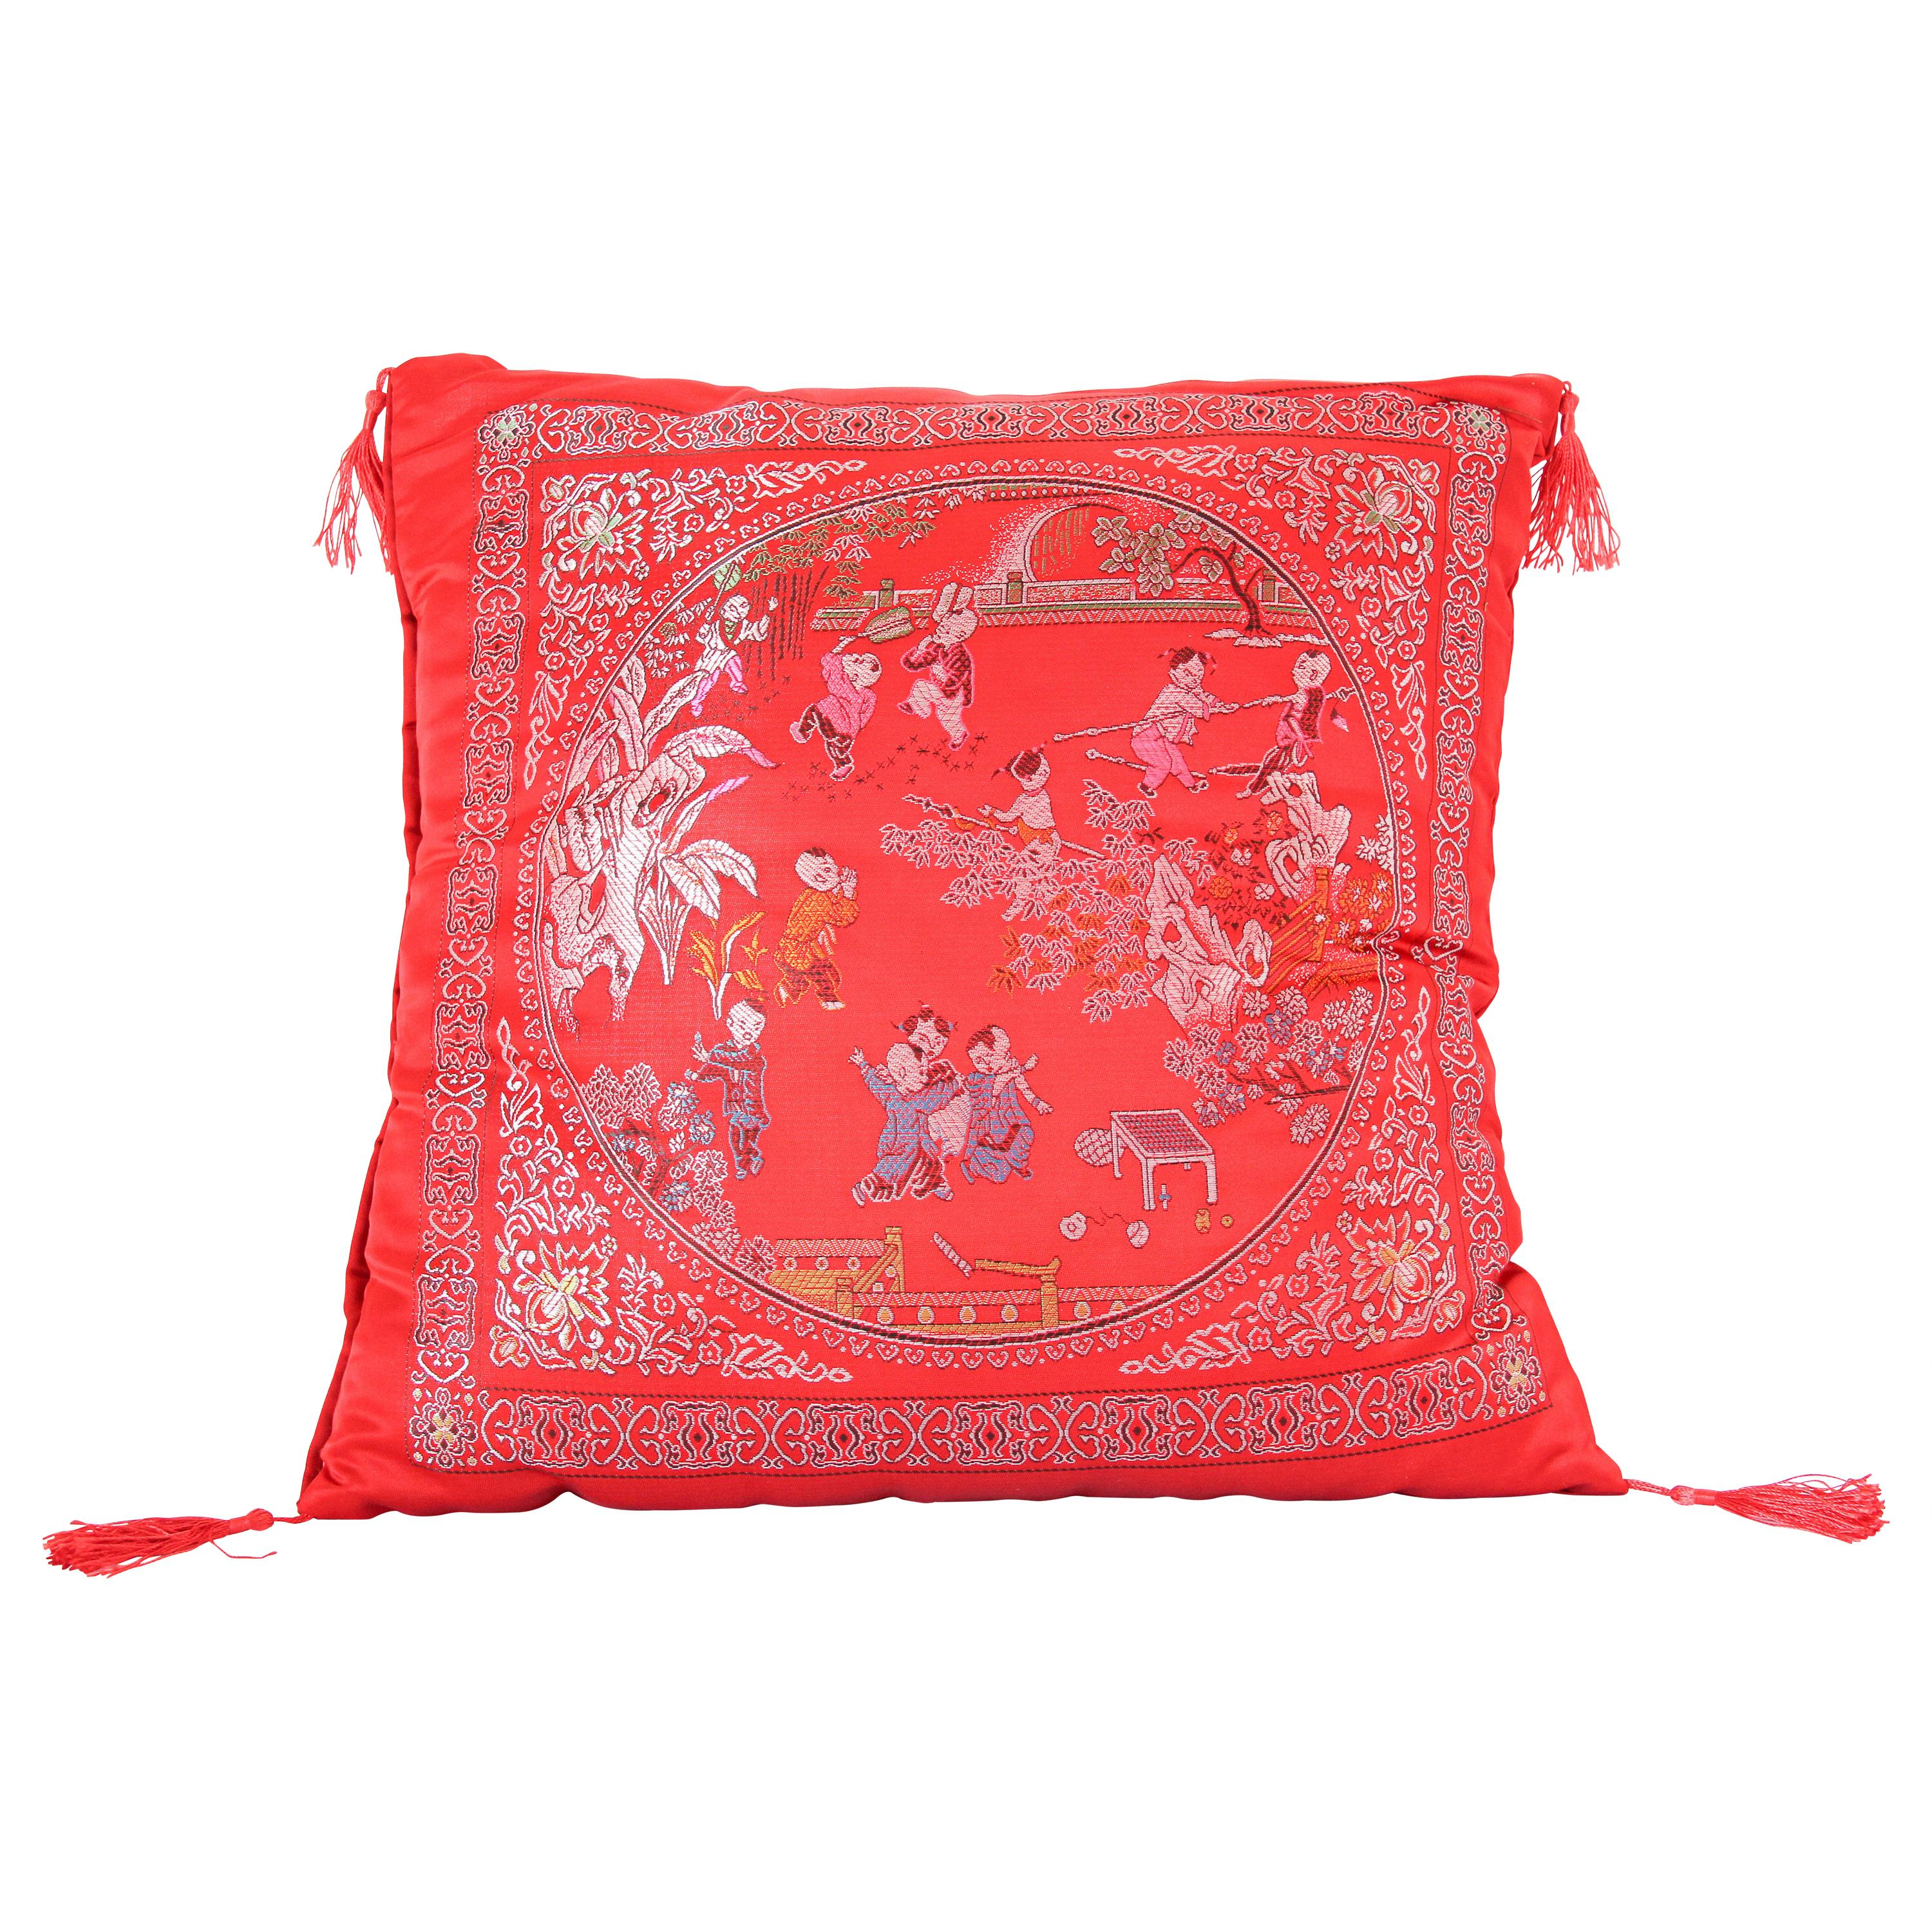 Chinese Decorative Red Throw Pillow with Tassels